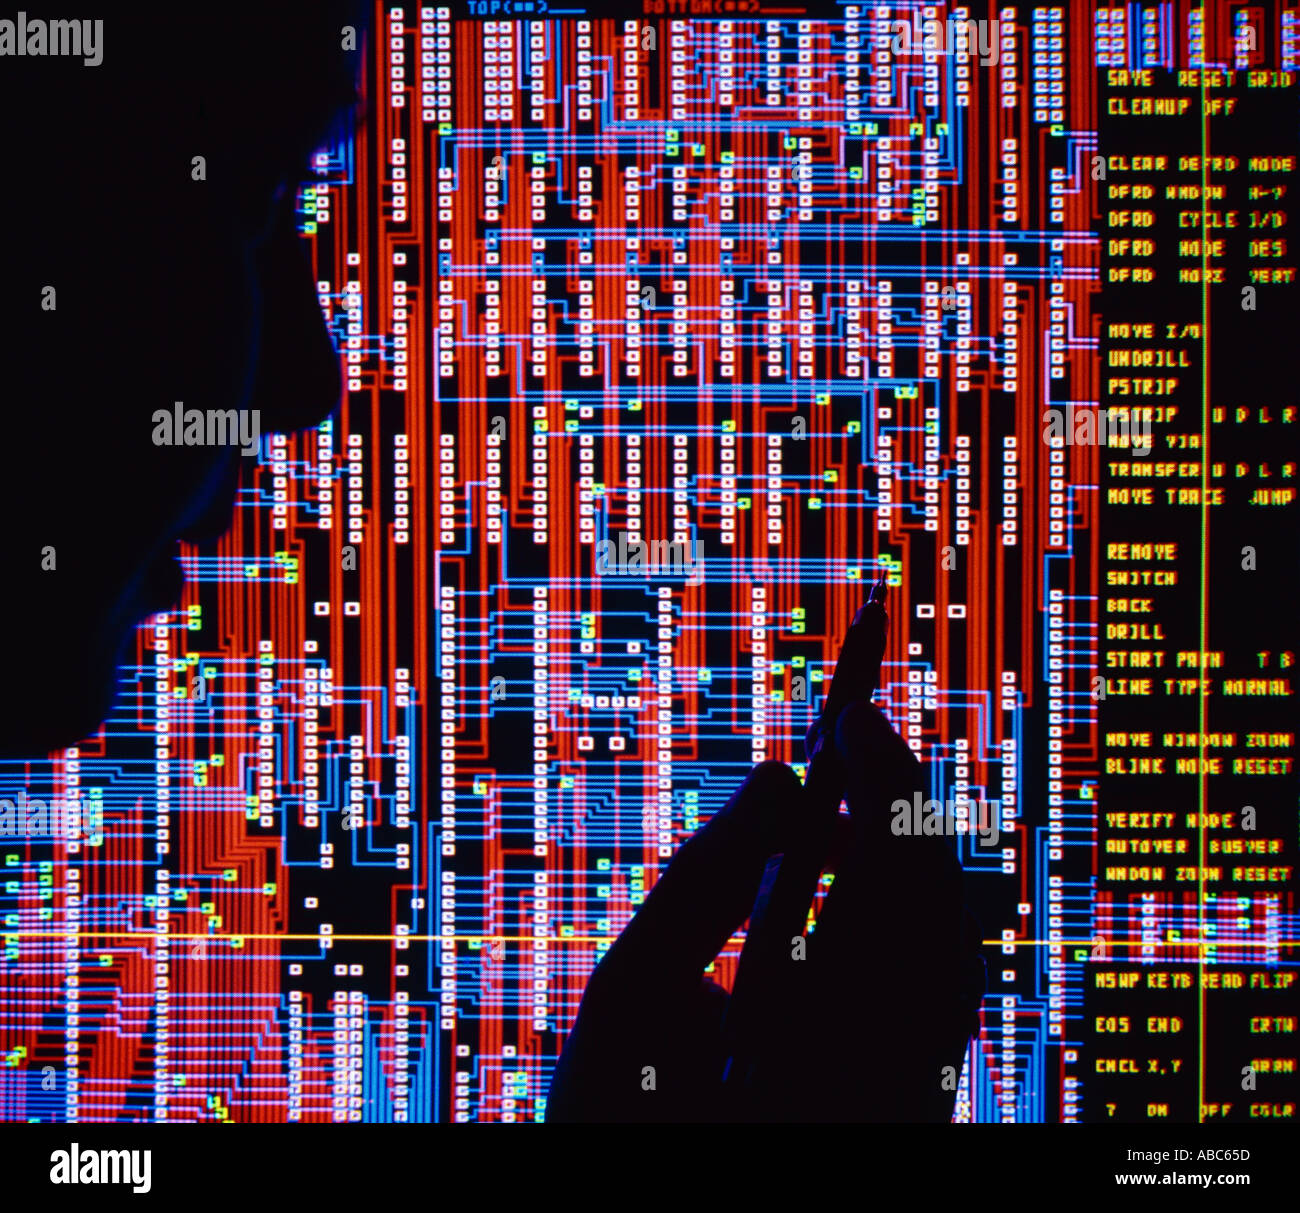 High Tech - Circuit board design computer screen, silhouette of design engineer / Silicon Valley, California, USA. - Stock Image